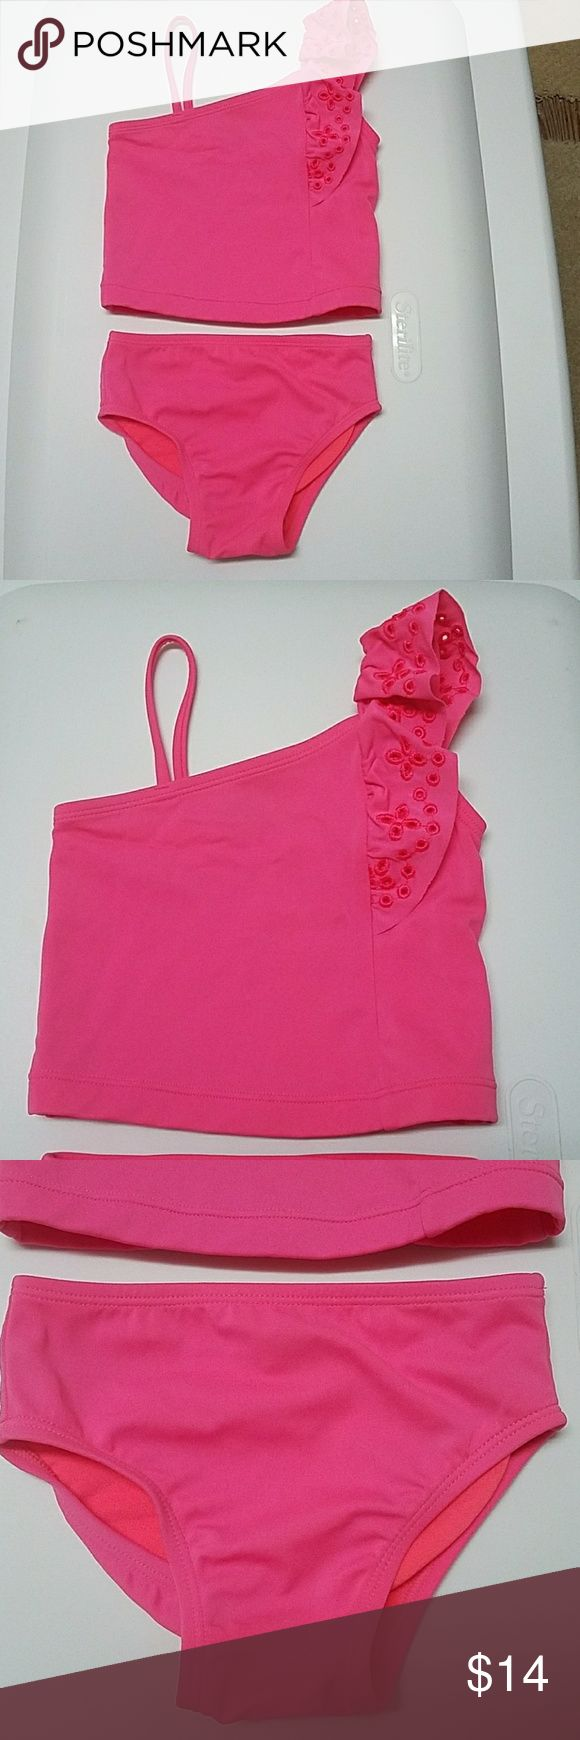 Toddler Gap pink tankini.  18-24 months In excellent condition.  Daughter wore this twice and has been washed. I cut out the label on the bottoms shown in picture 4. GAP Swim Bikinis